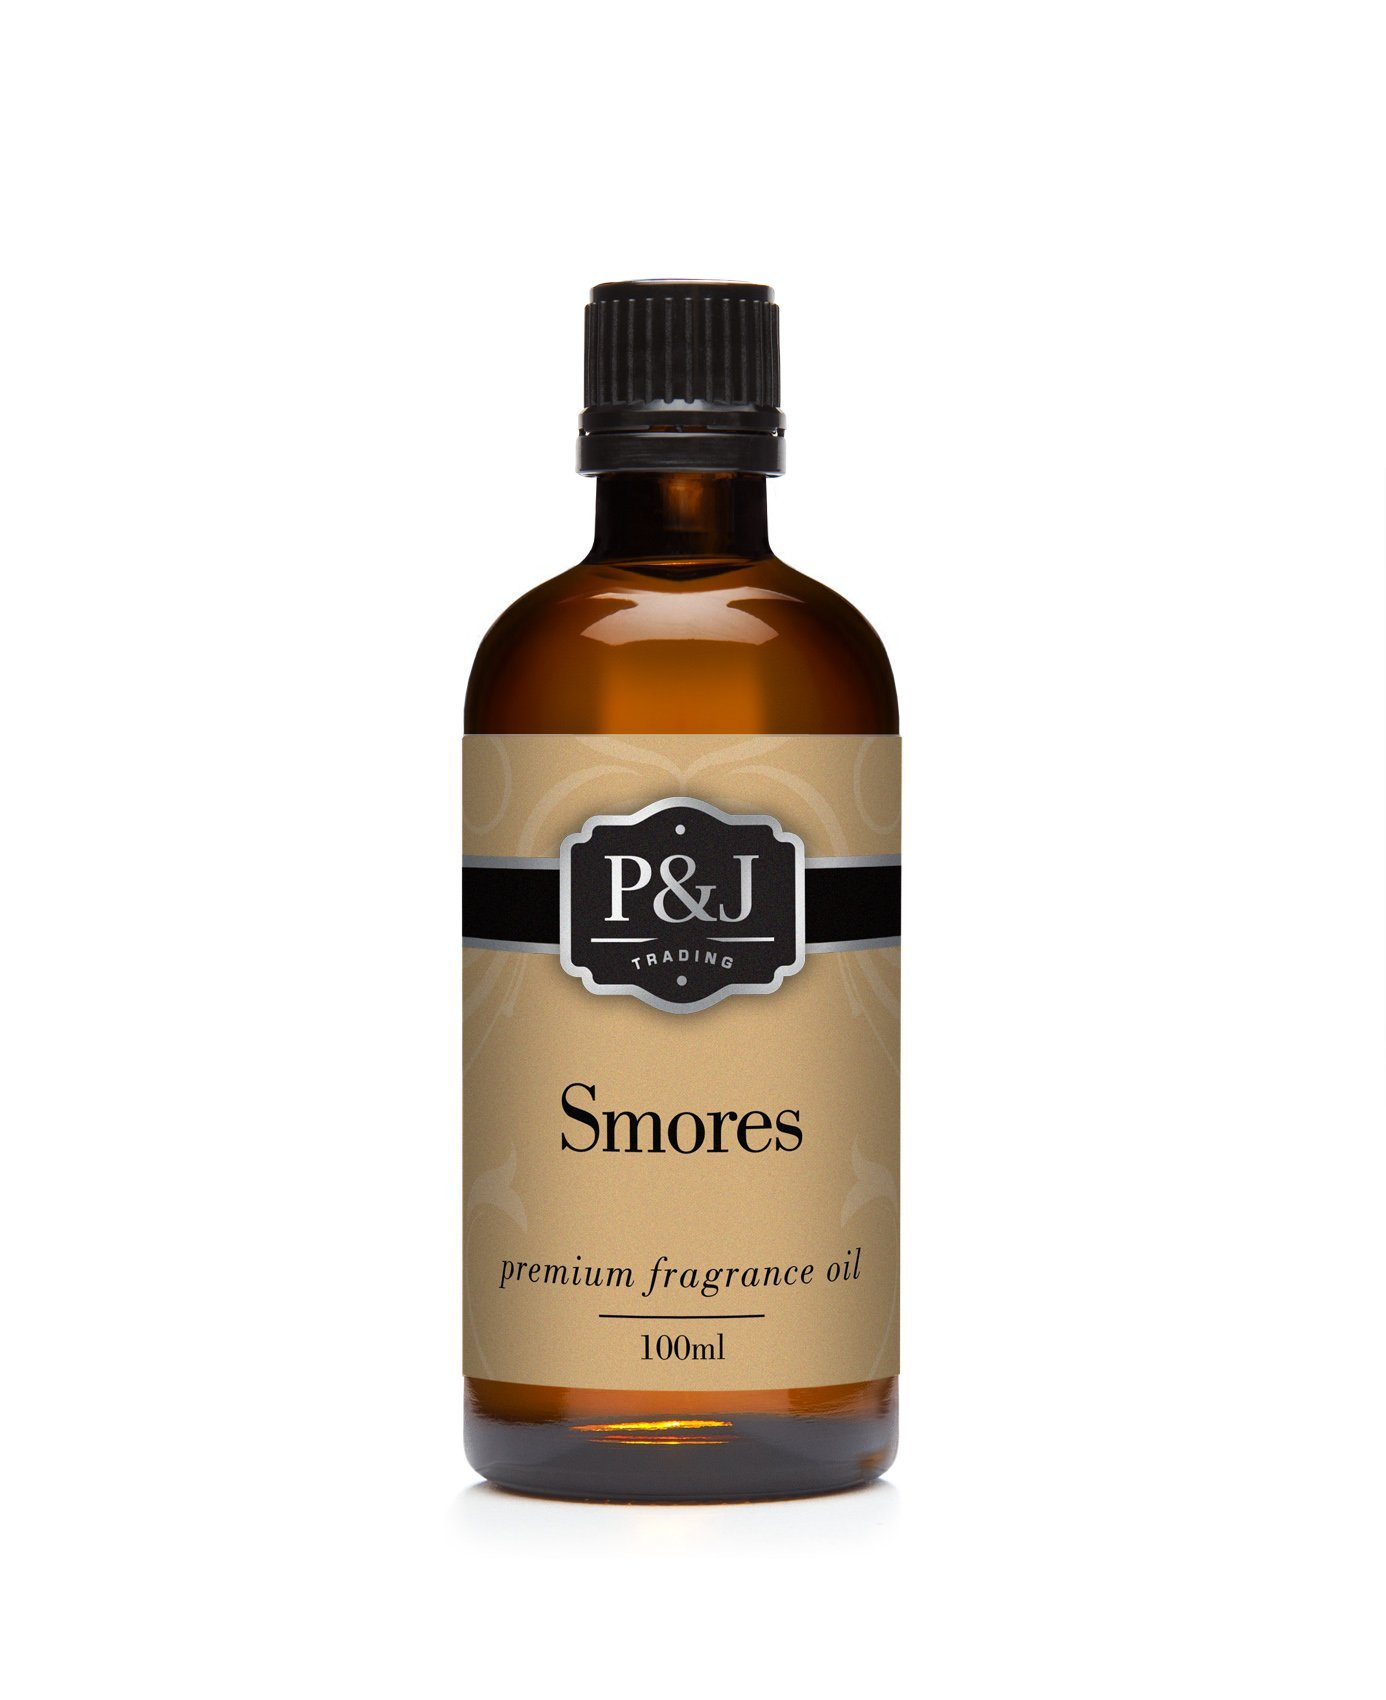 Smores Fragrance Oil - Premium Grade Scented Oil - 100ml/3.3oz